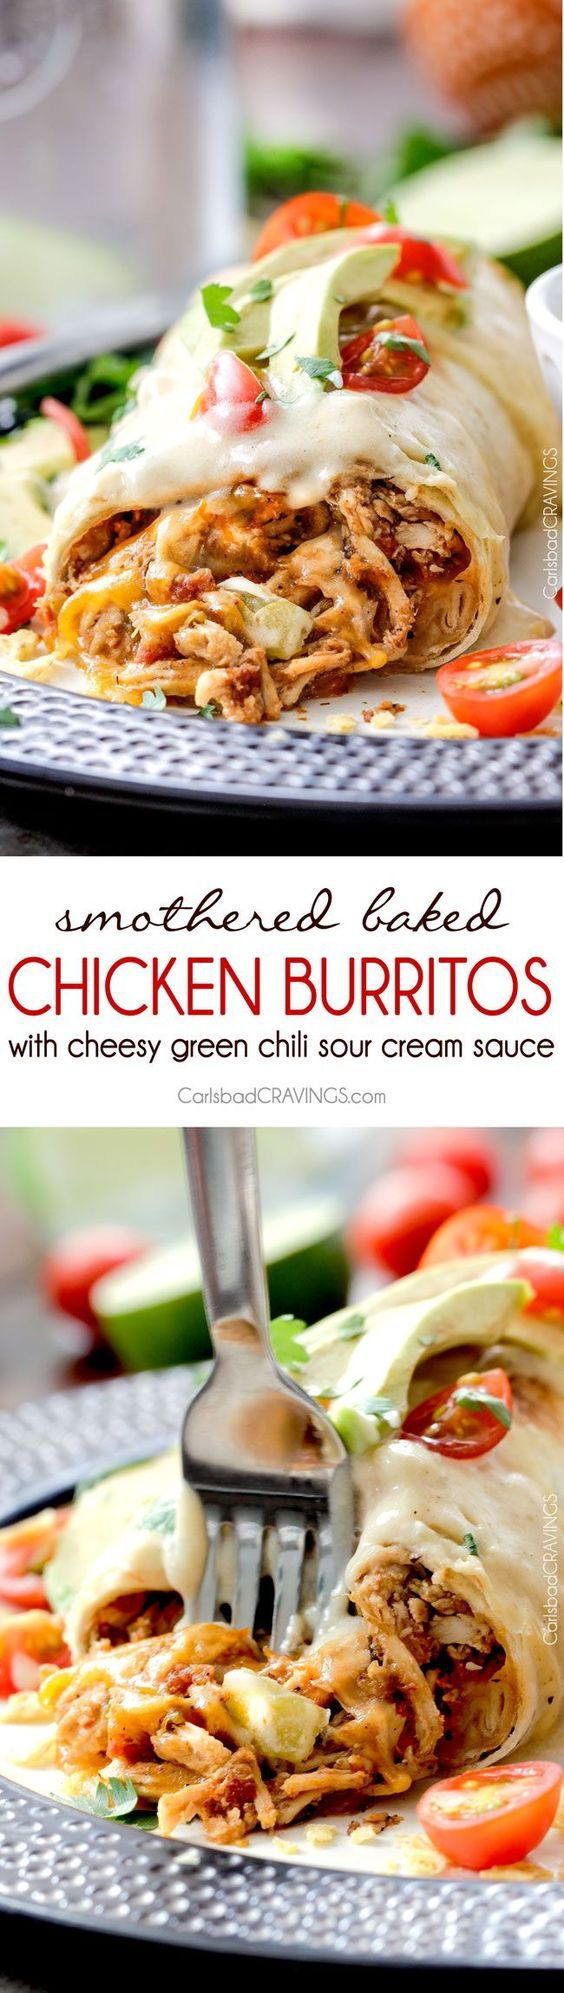 "Smothered Baked Chicken Burritos AKA ""skinny chimichangas"" are restaurant delicious without all the calories! made super easy by stuffing with the BEST slow cooker Mexican chicken and then baked to golden perfection and smothered in most incredi"